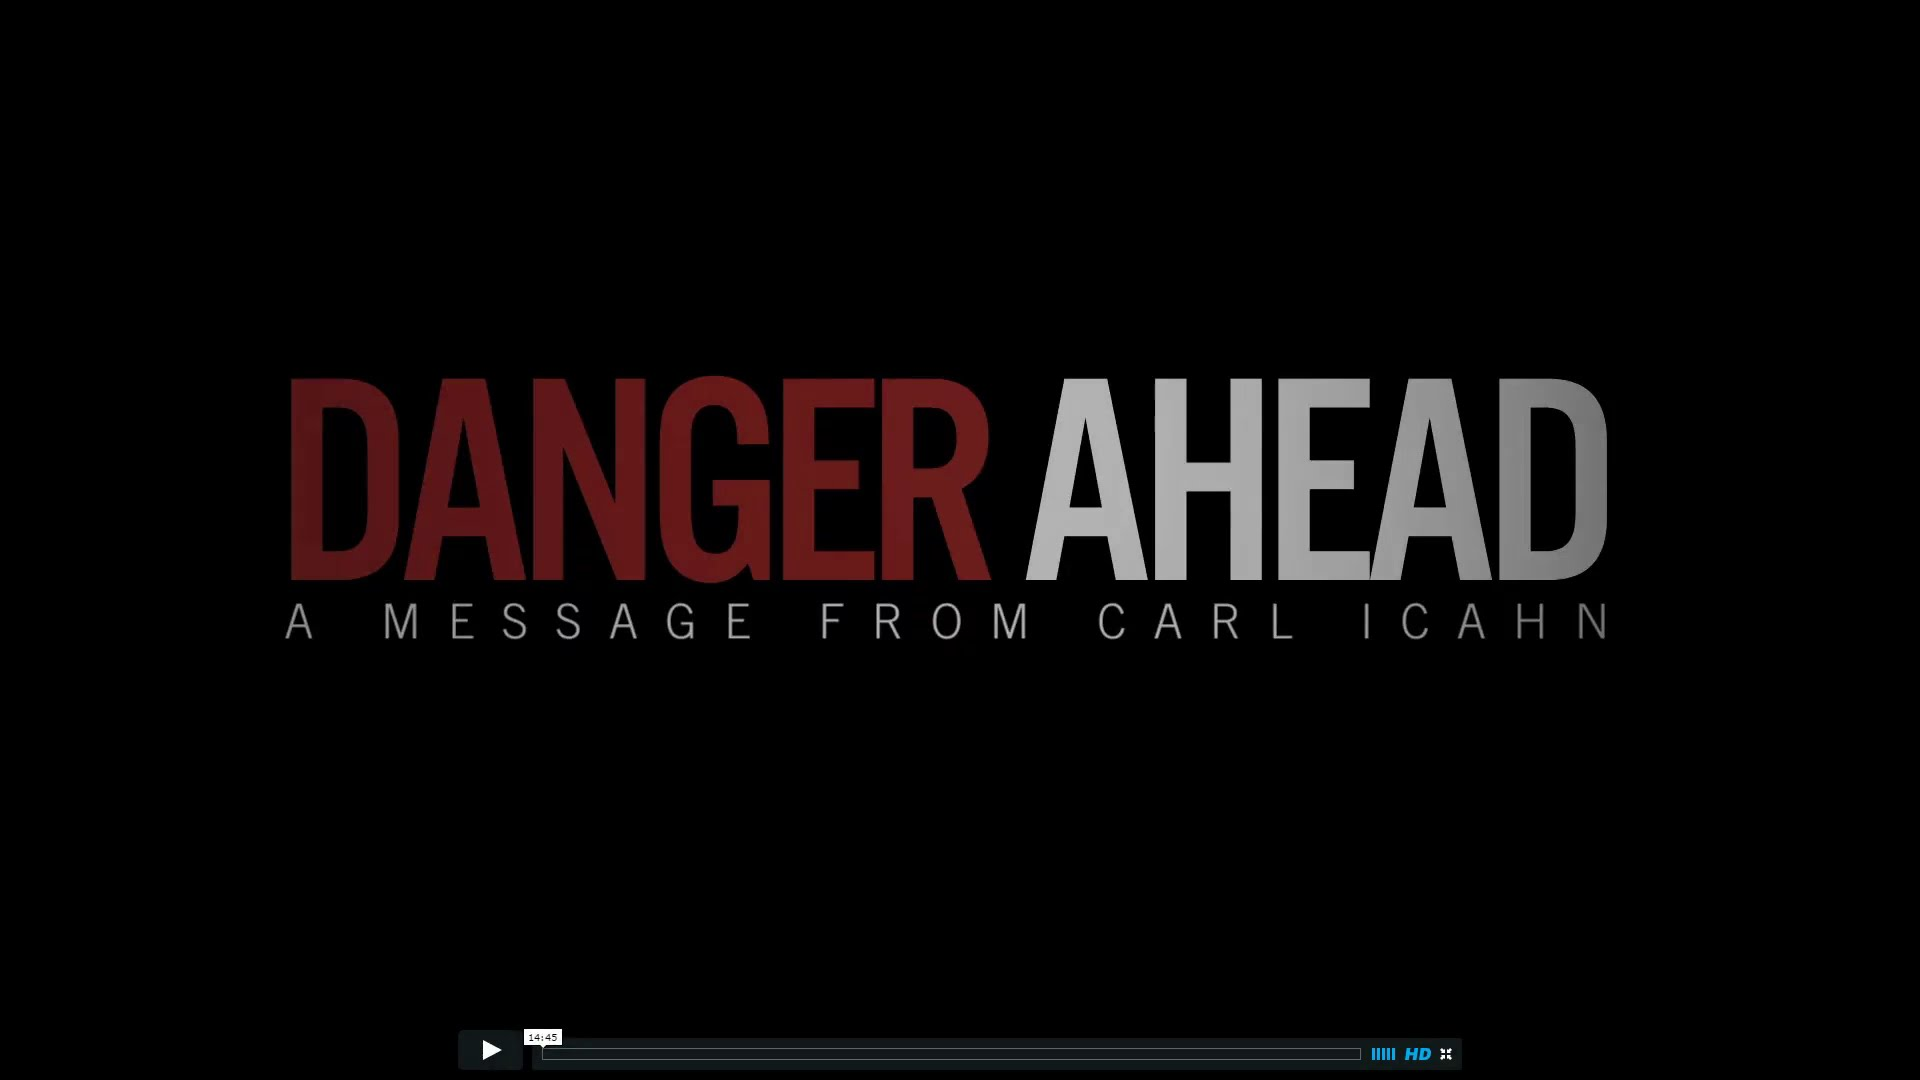 Stock Market Crash Coming Says Billionaire: Danger Ahead – A Message from Carl Ichan